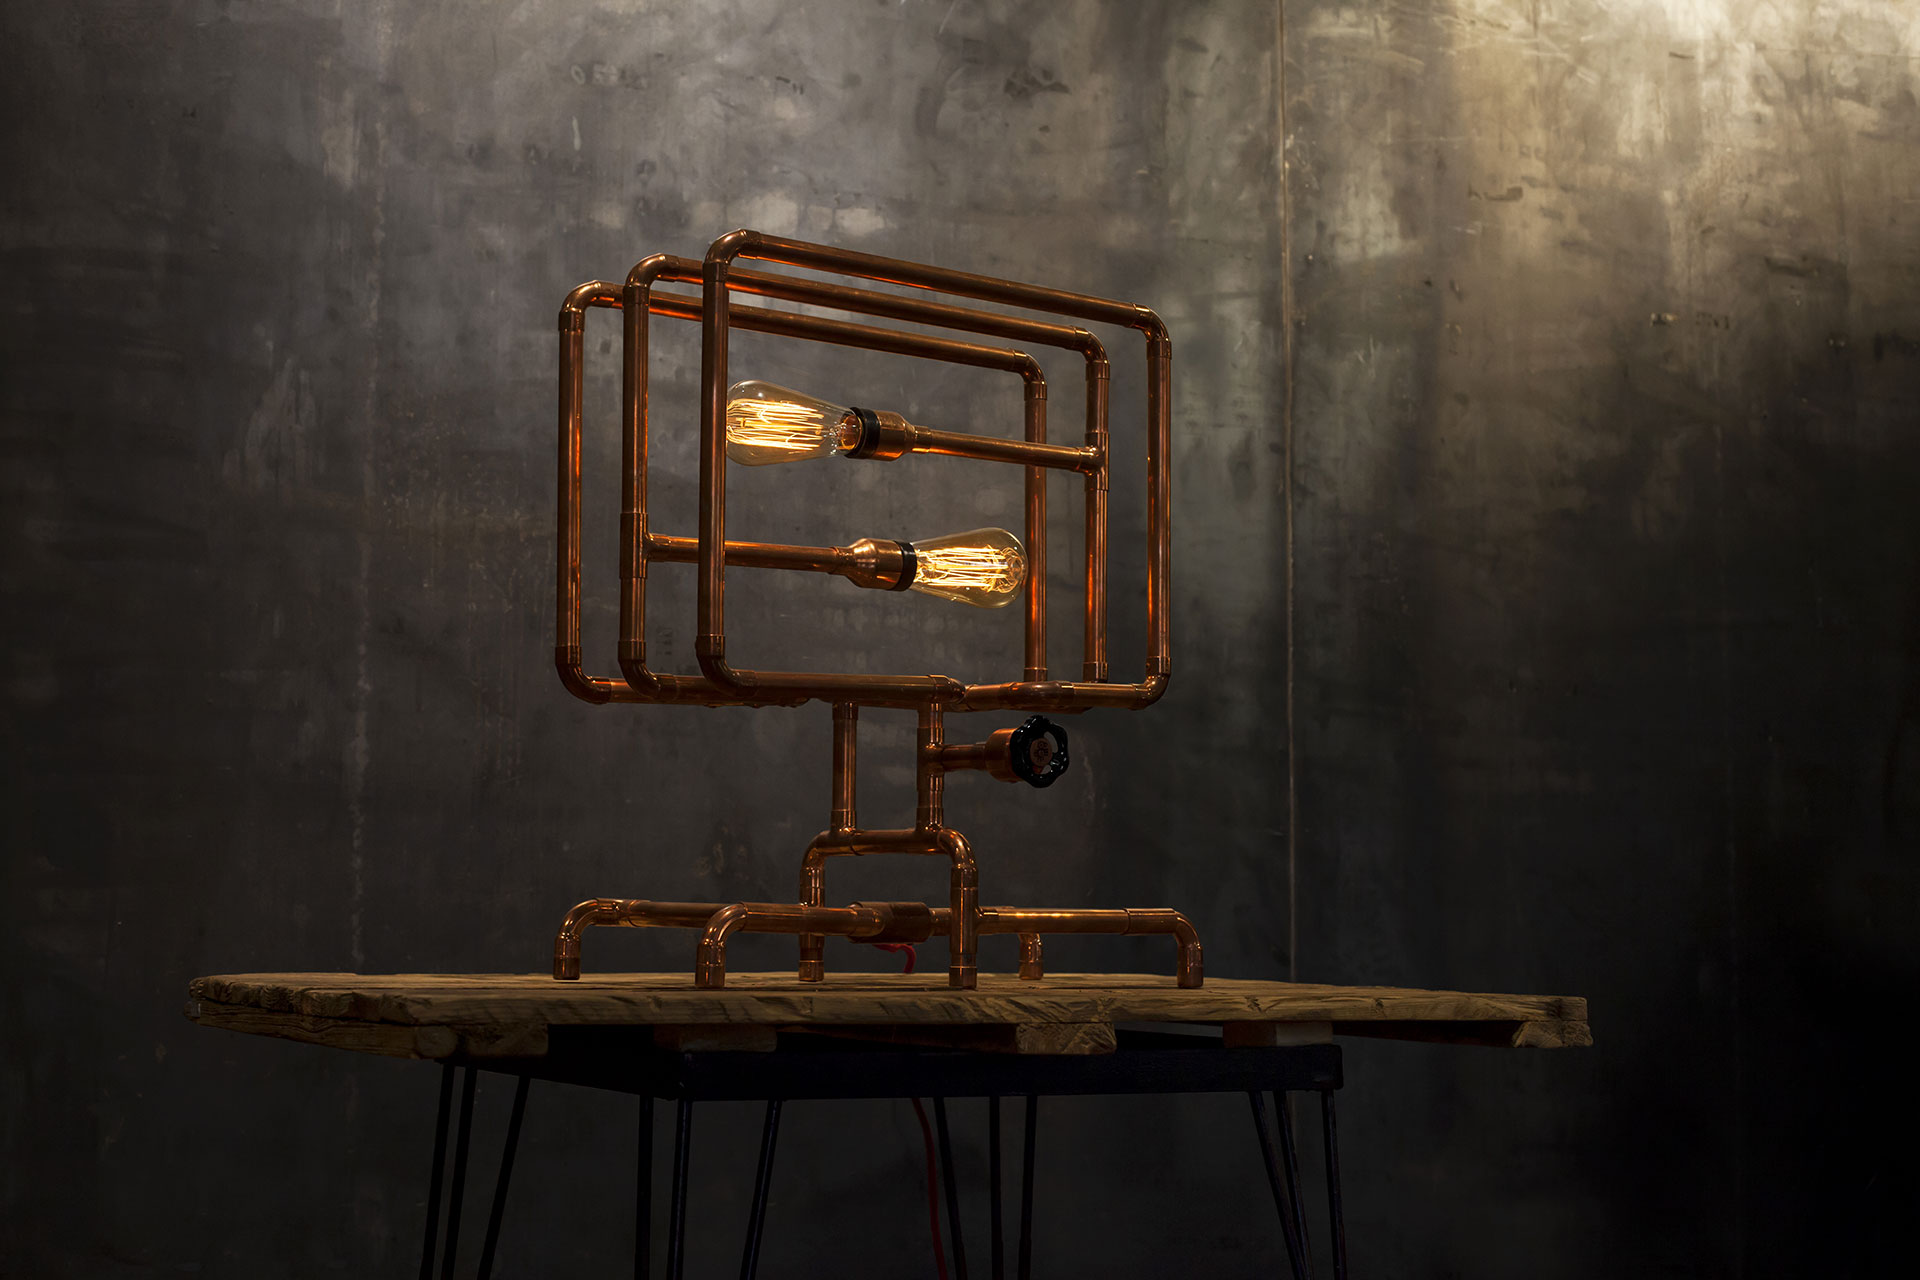 Dimmable copper pipe table lamp inspired by steampunk design on vintage loft console table